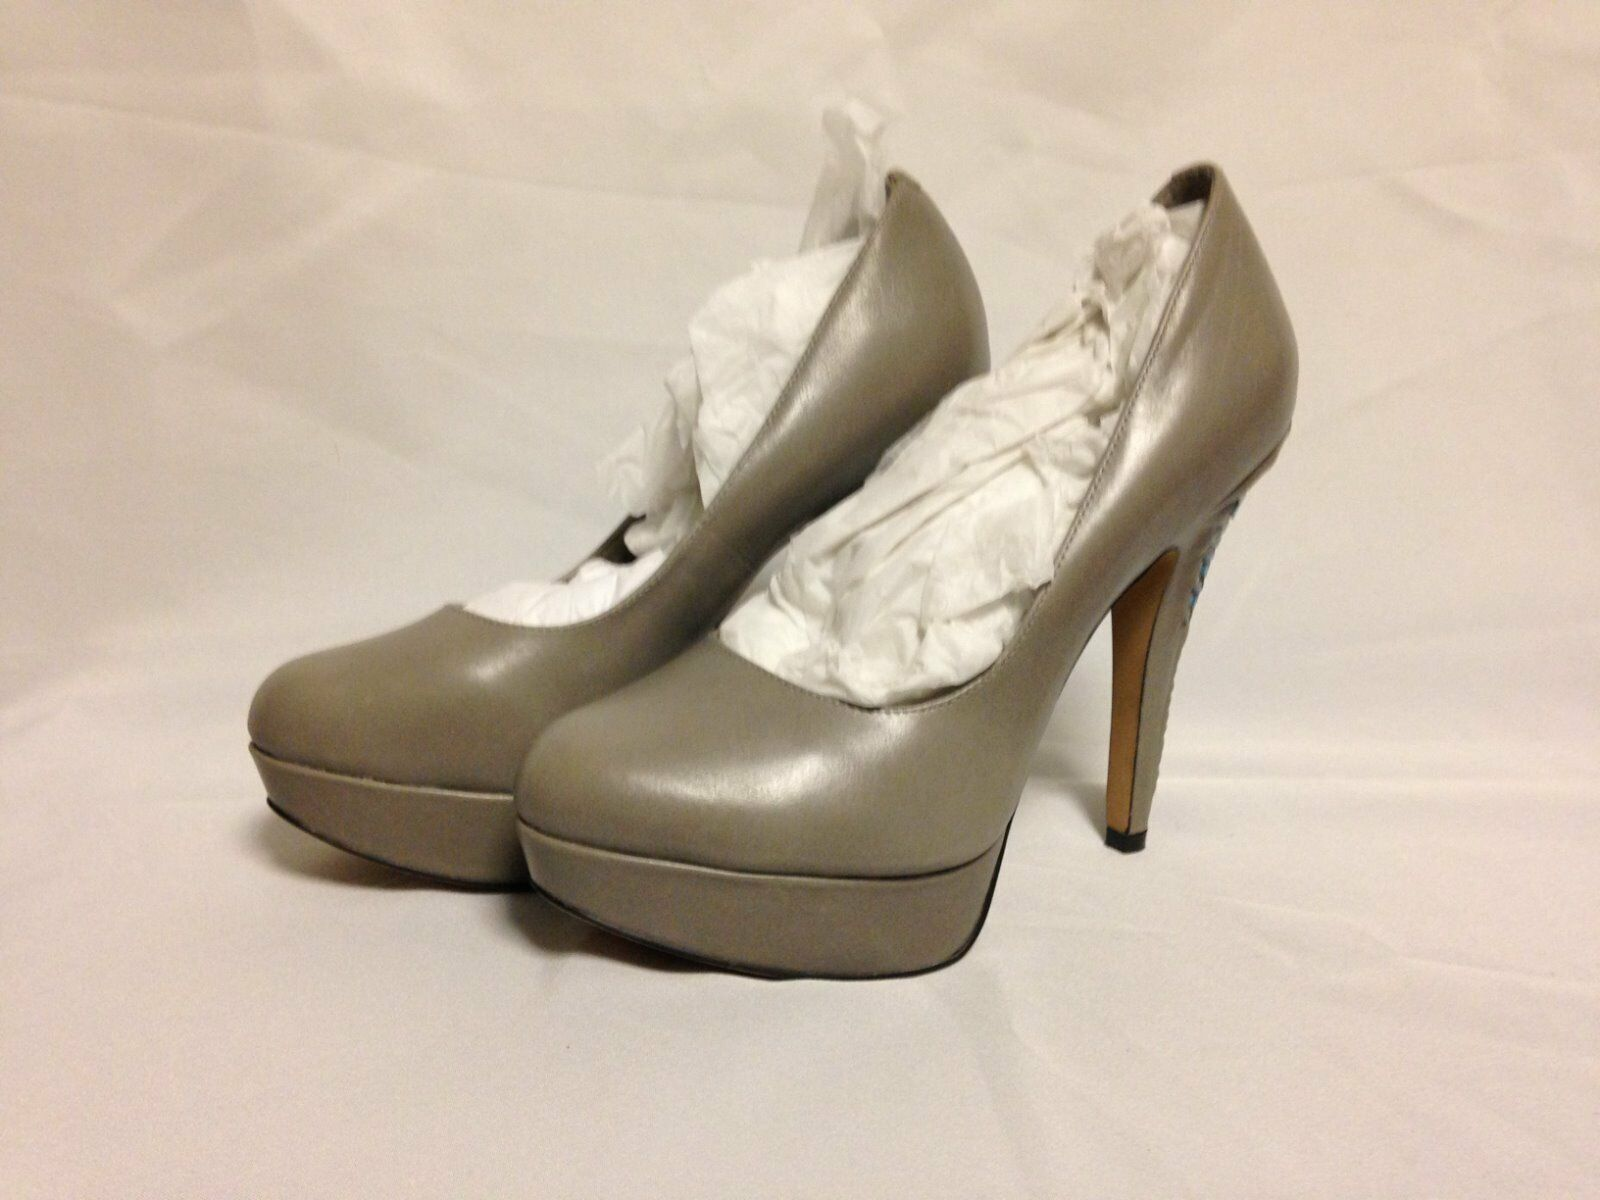 Vince Camuto Maari High Heel Pump 7.5 M Marble Palace bluee New w Box